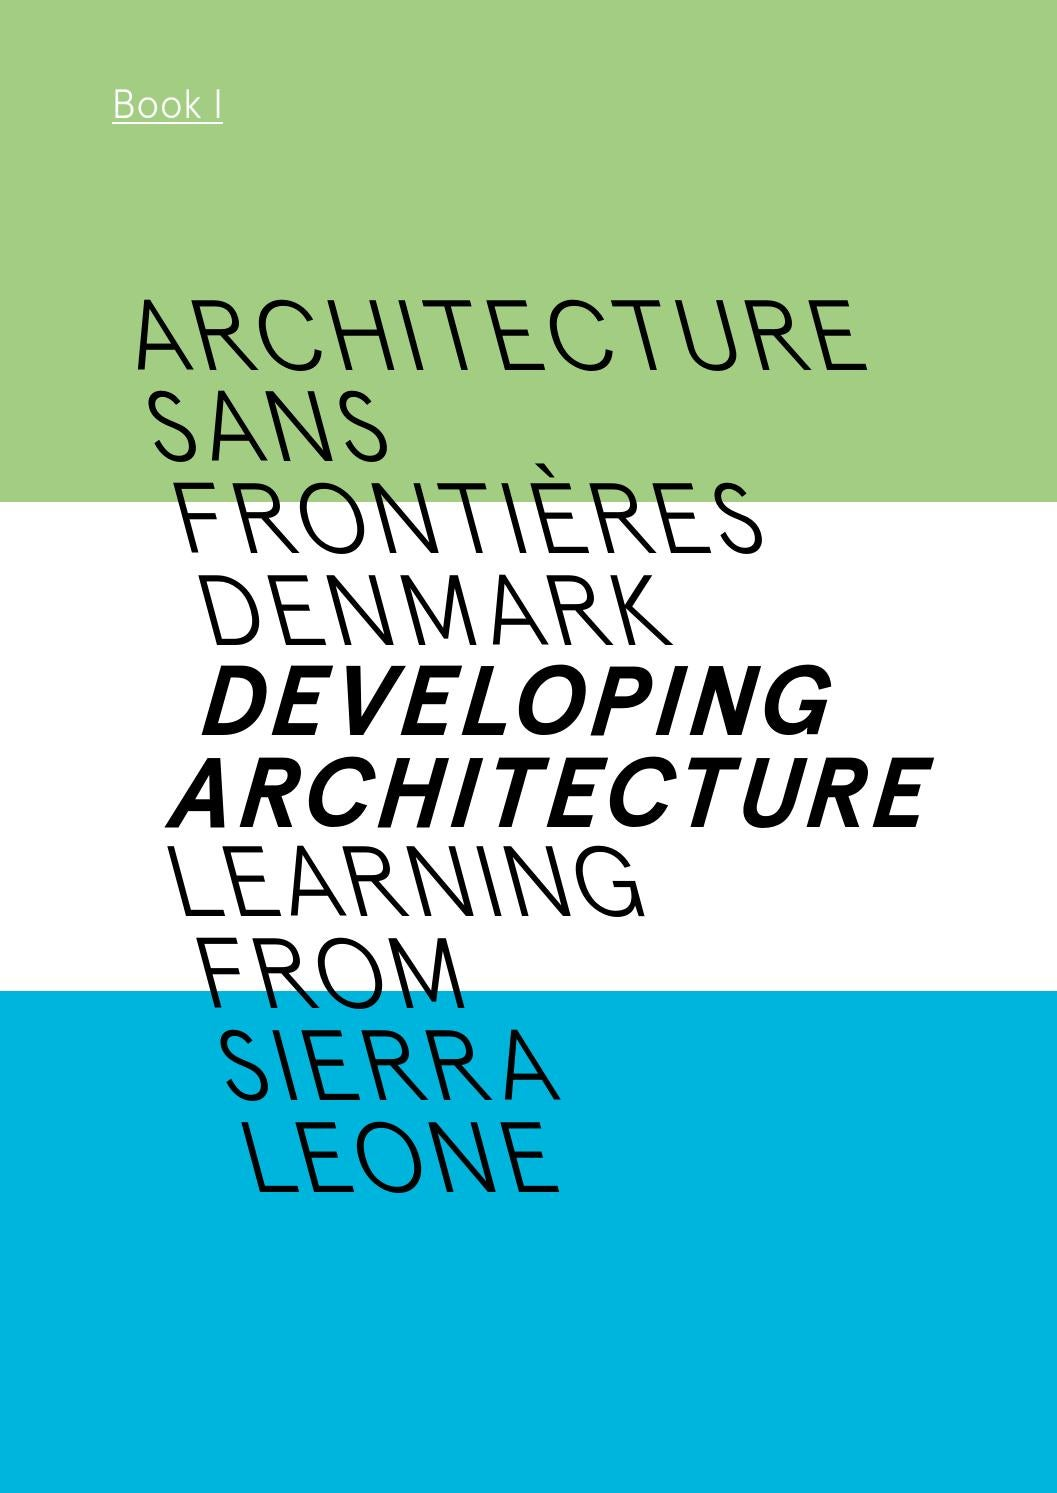 Developing Architecture Learning From Sierra Leone By Arkitekter